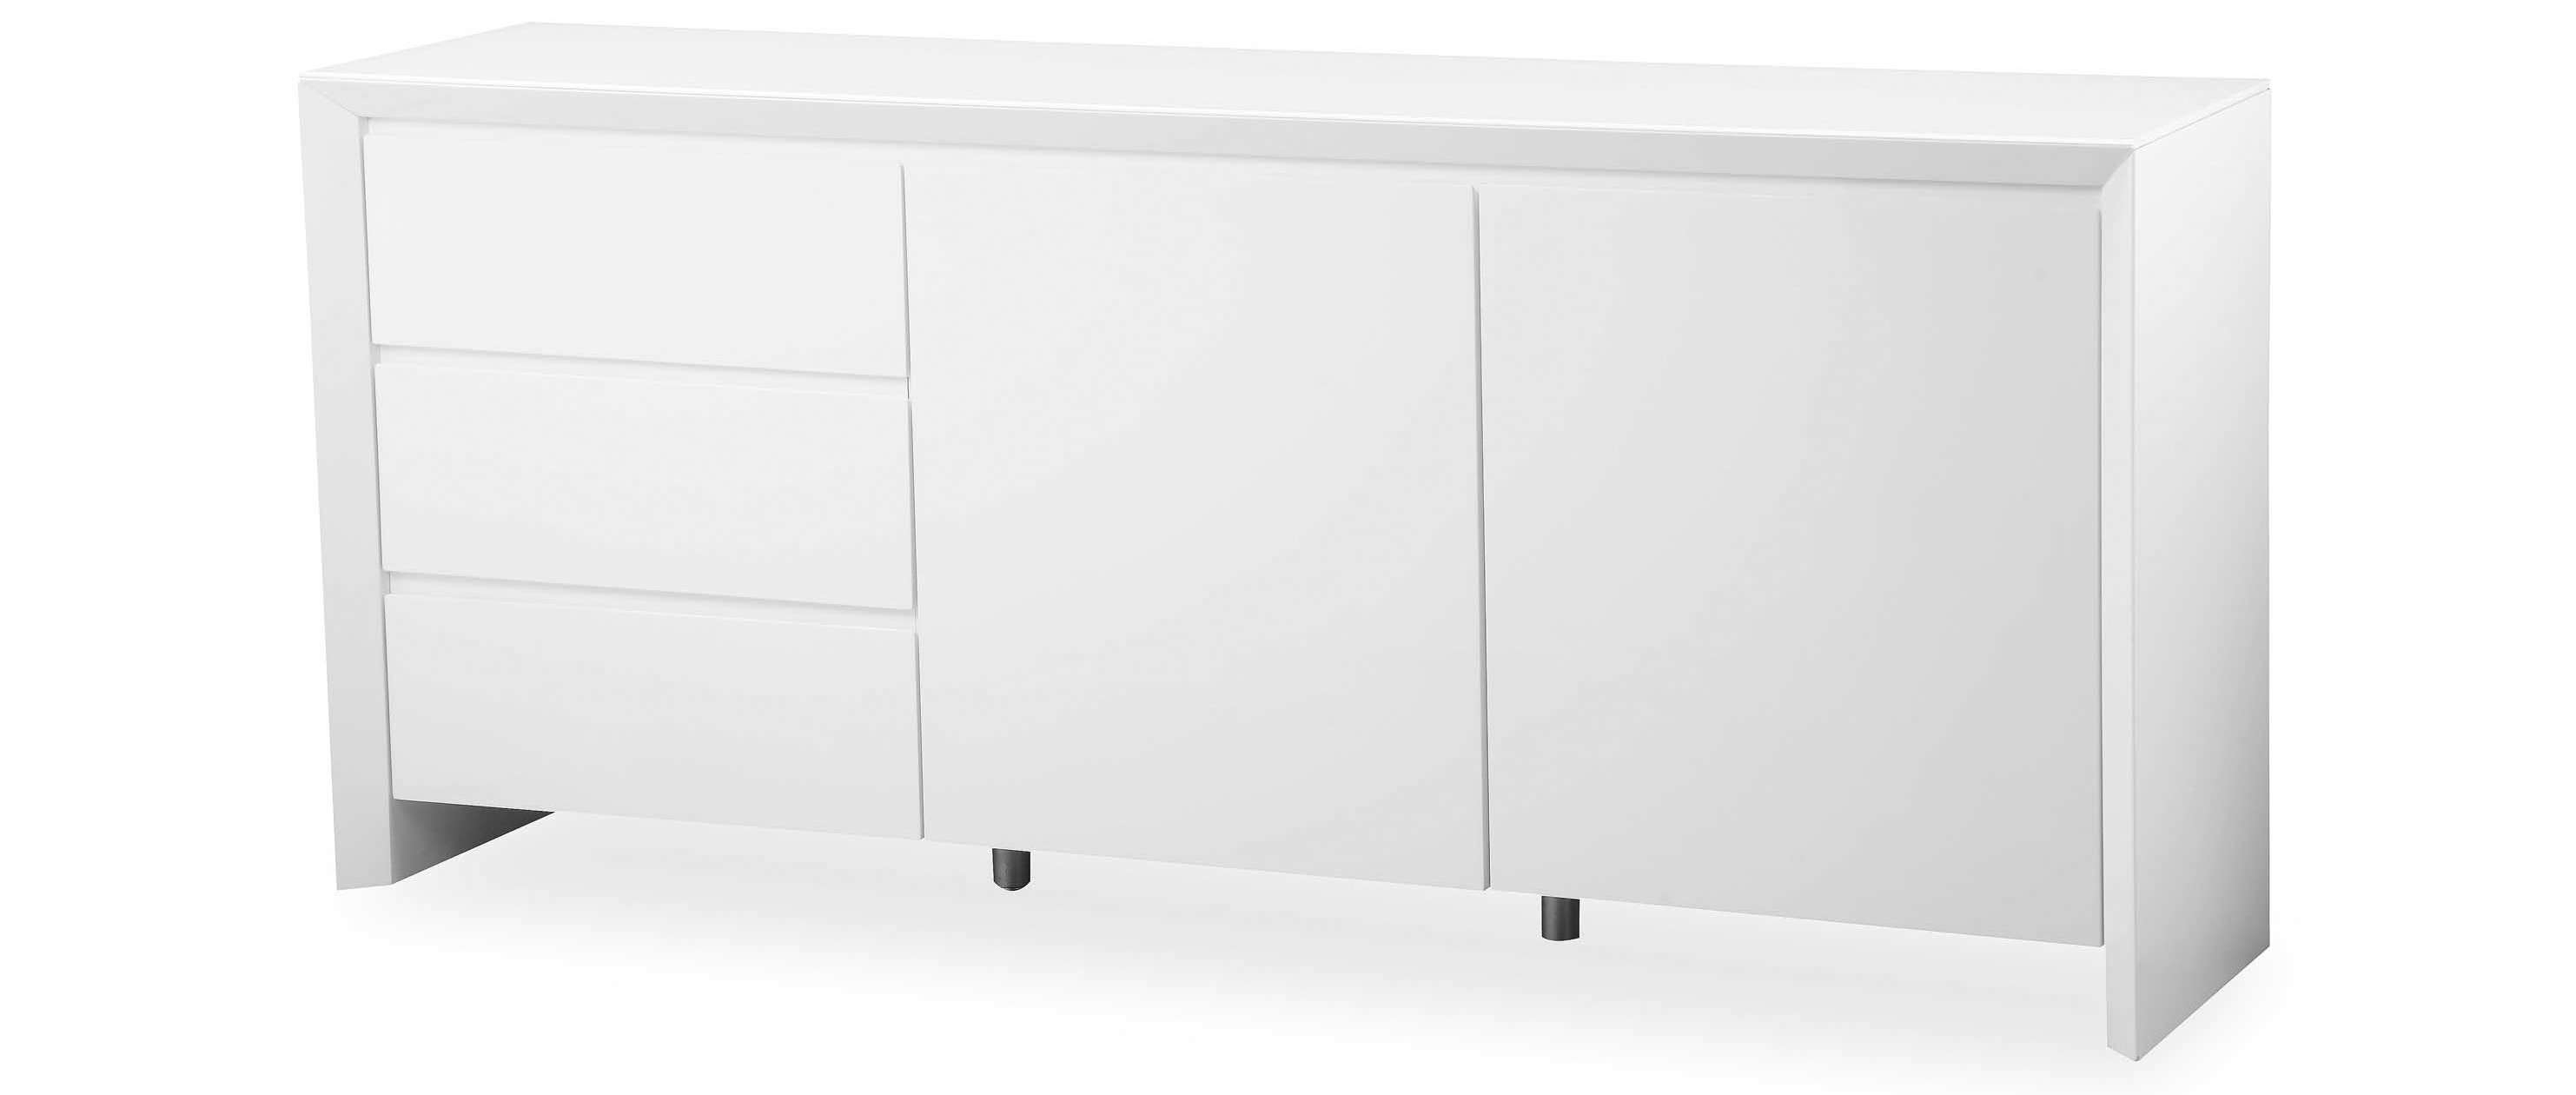 Soho – Extra Large Sideboard – White High Gloss Within Extra Deep Sideboards (View 19 of 20)